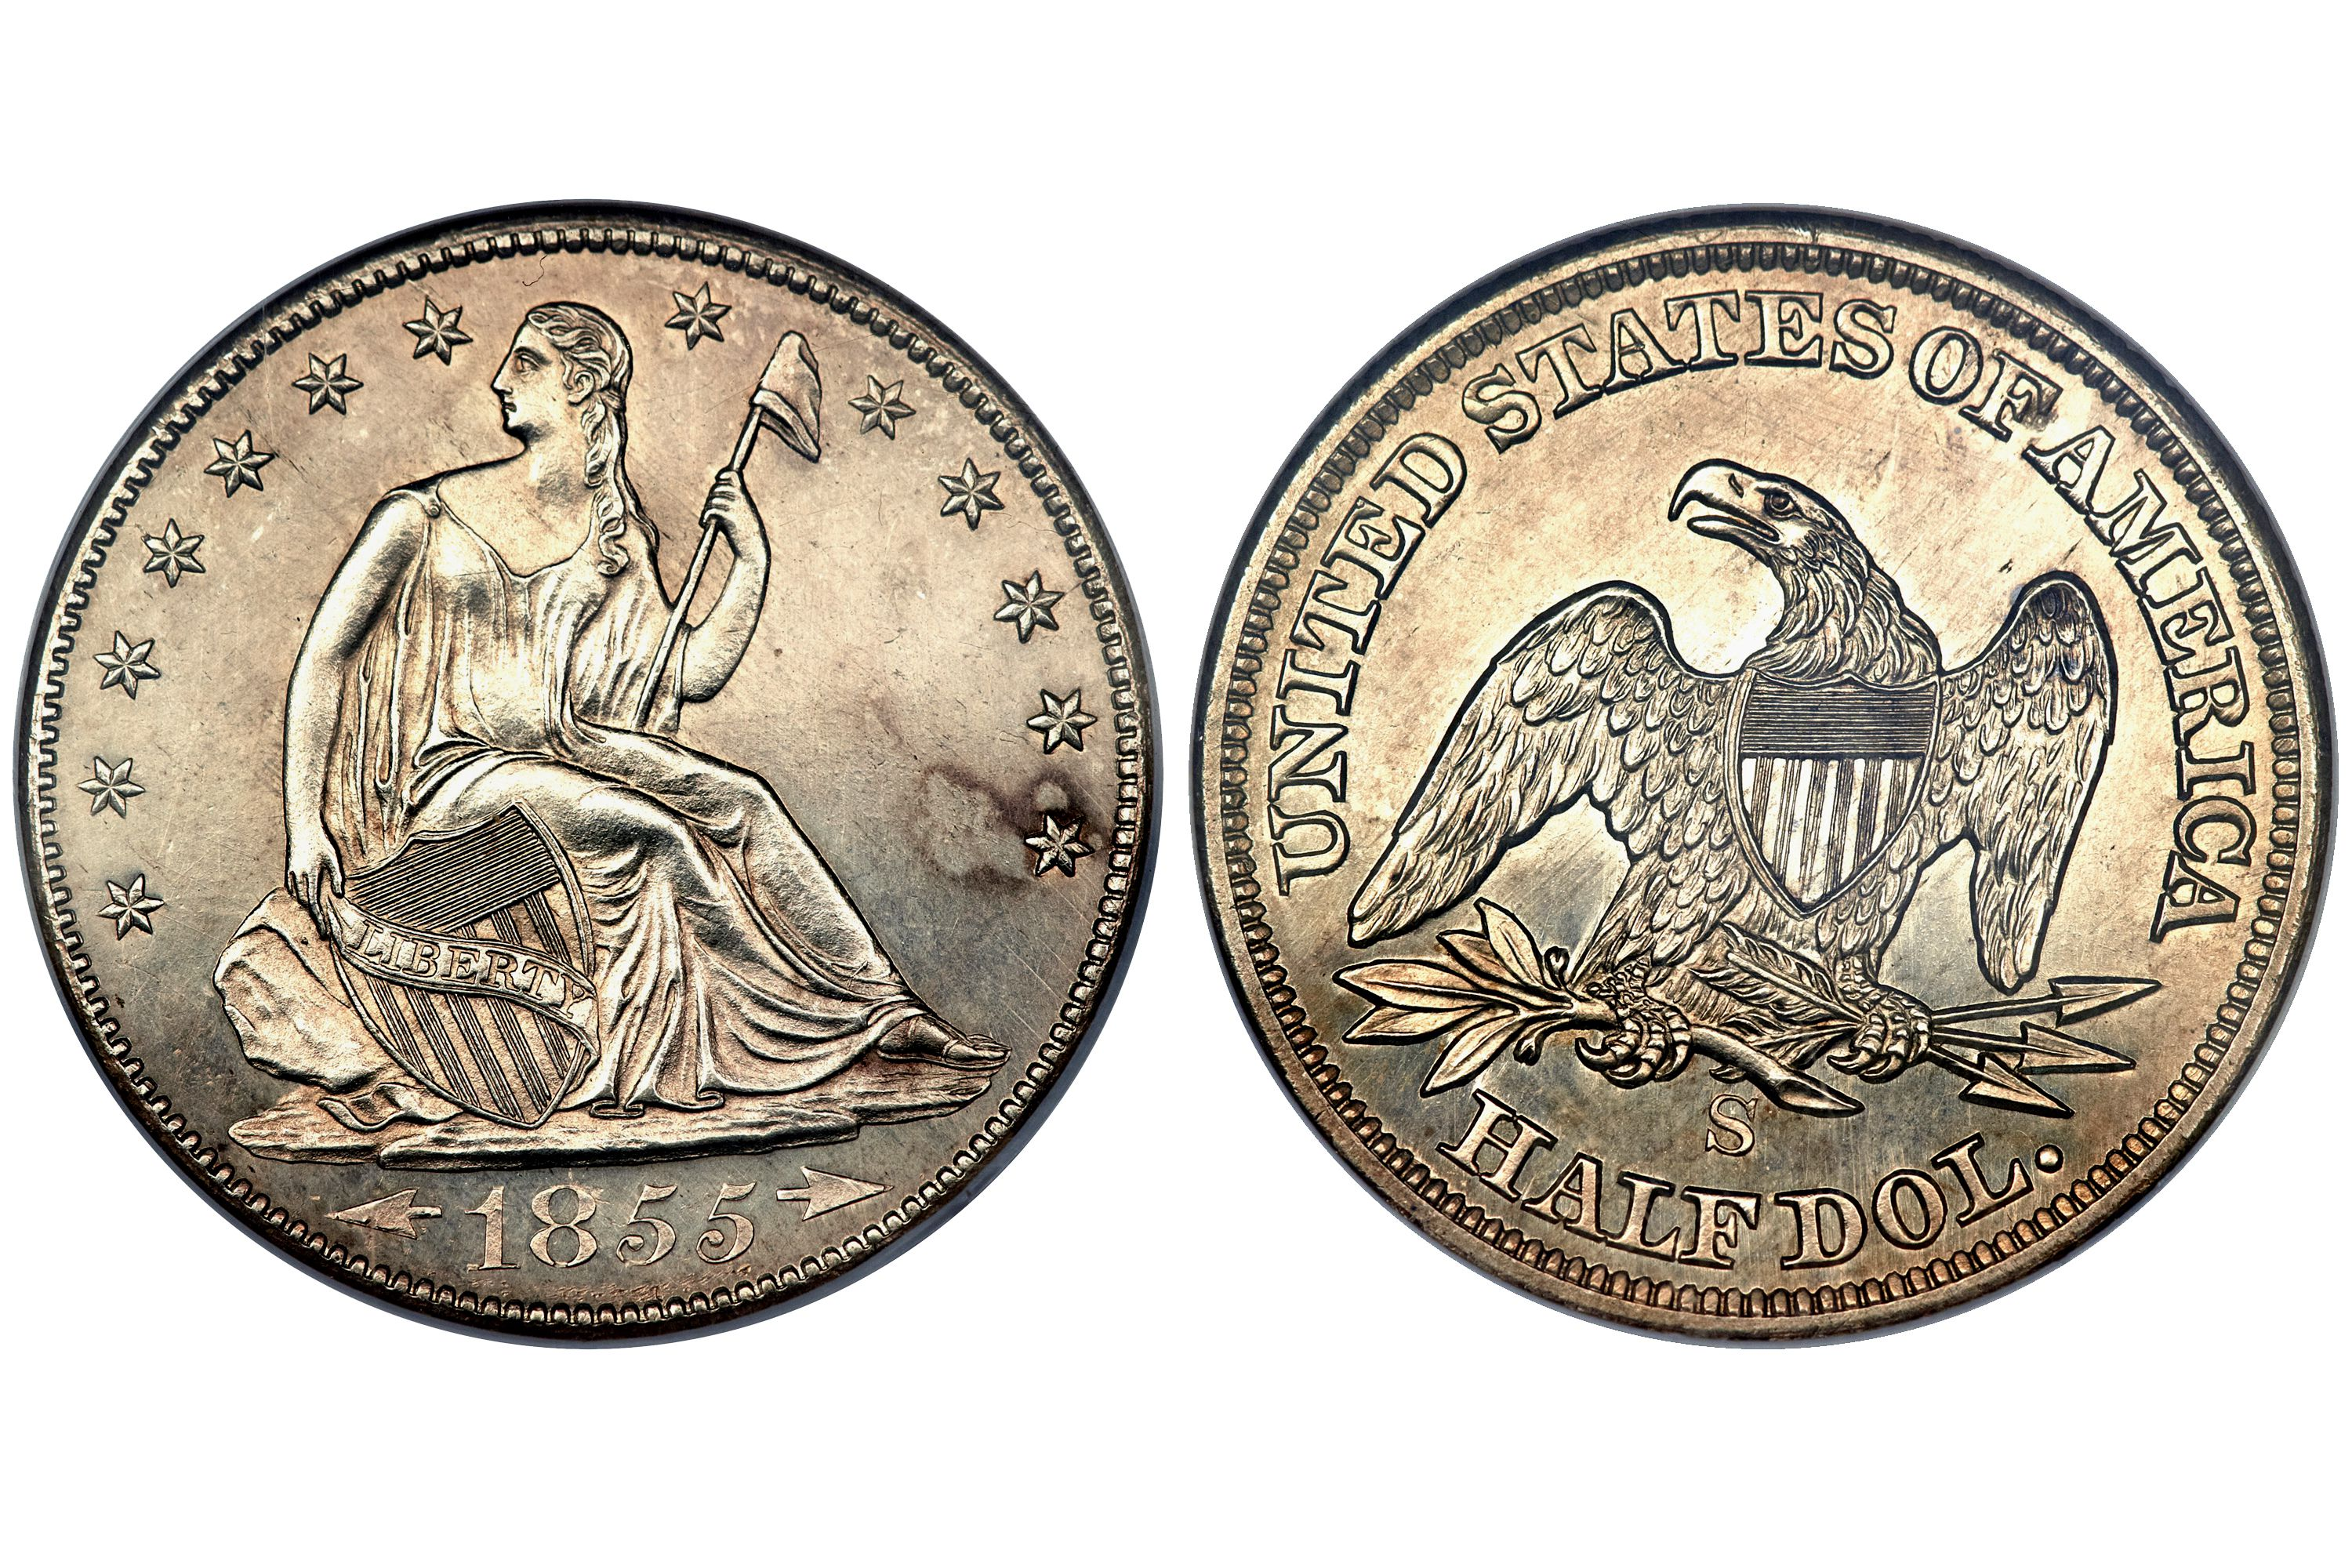 1855-S Proof Liberty Seated Half Dollar graded PR-65 by NGC